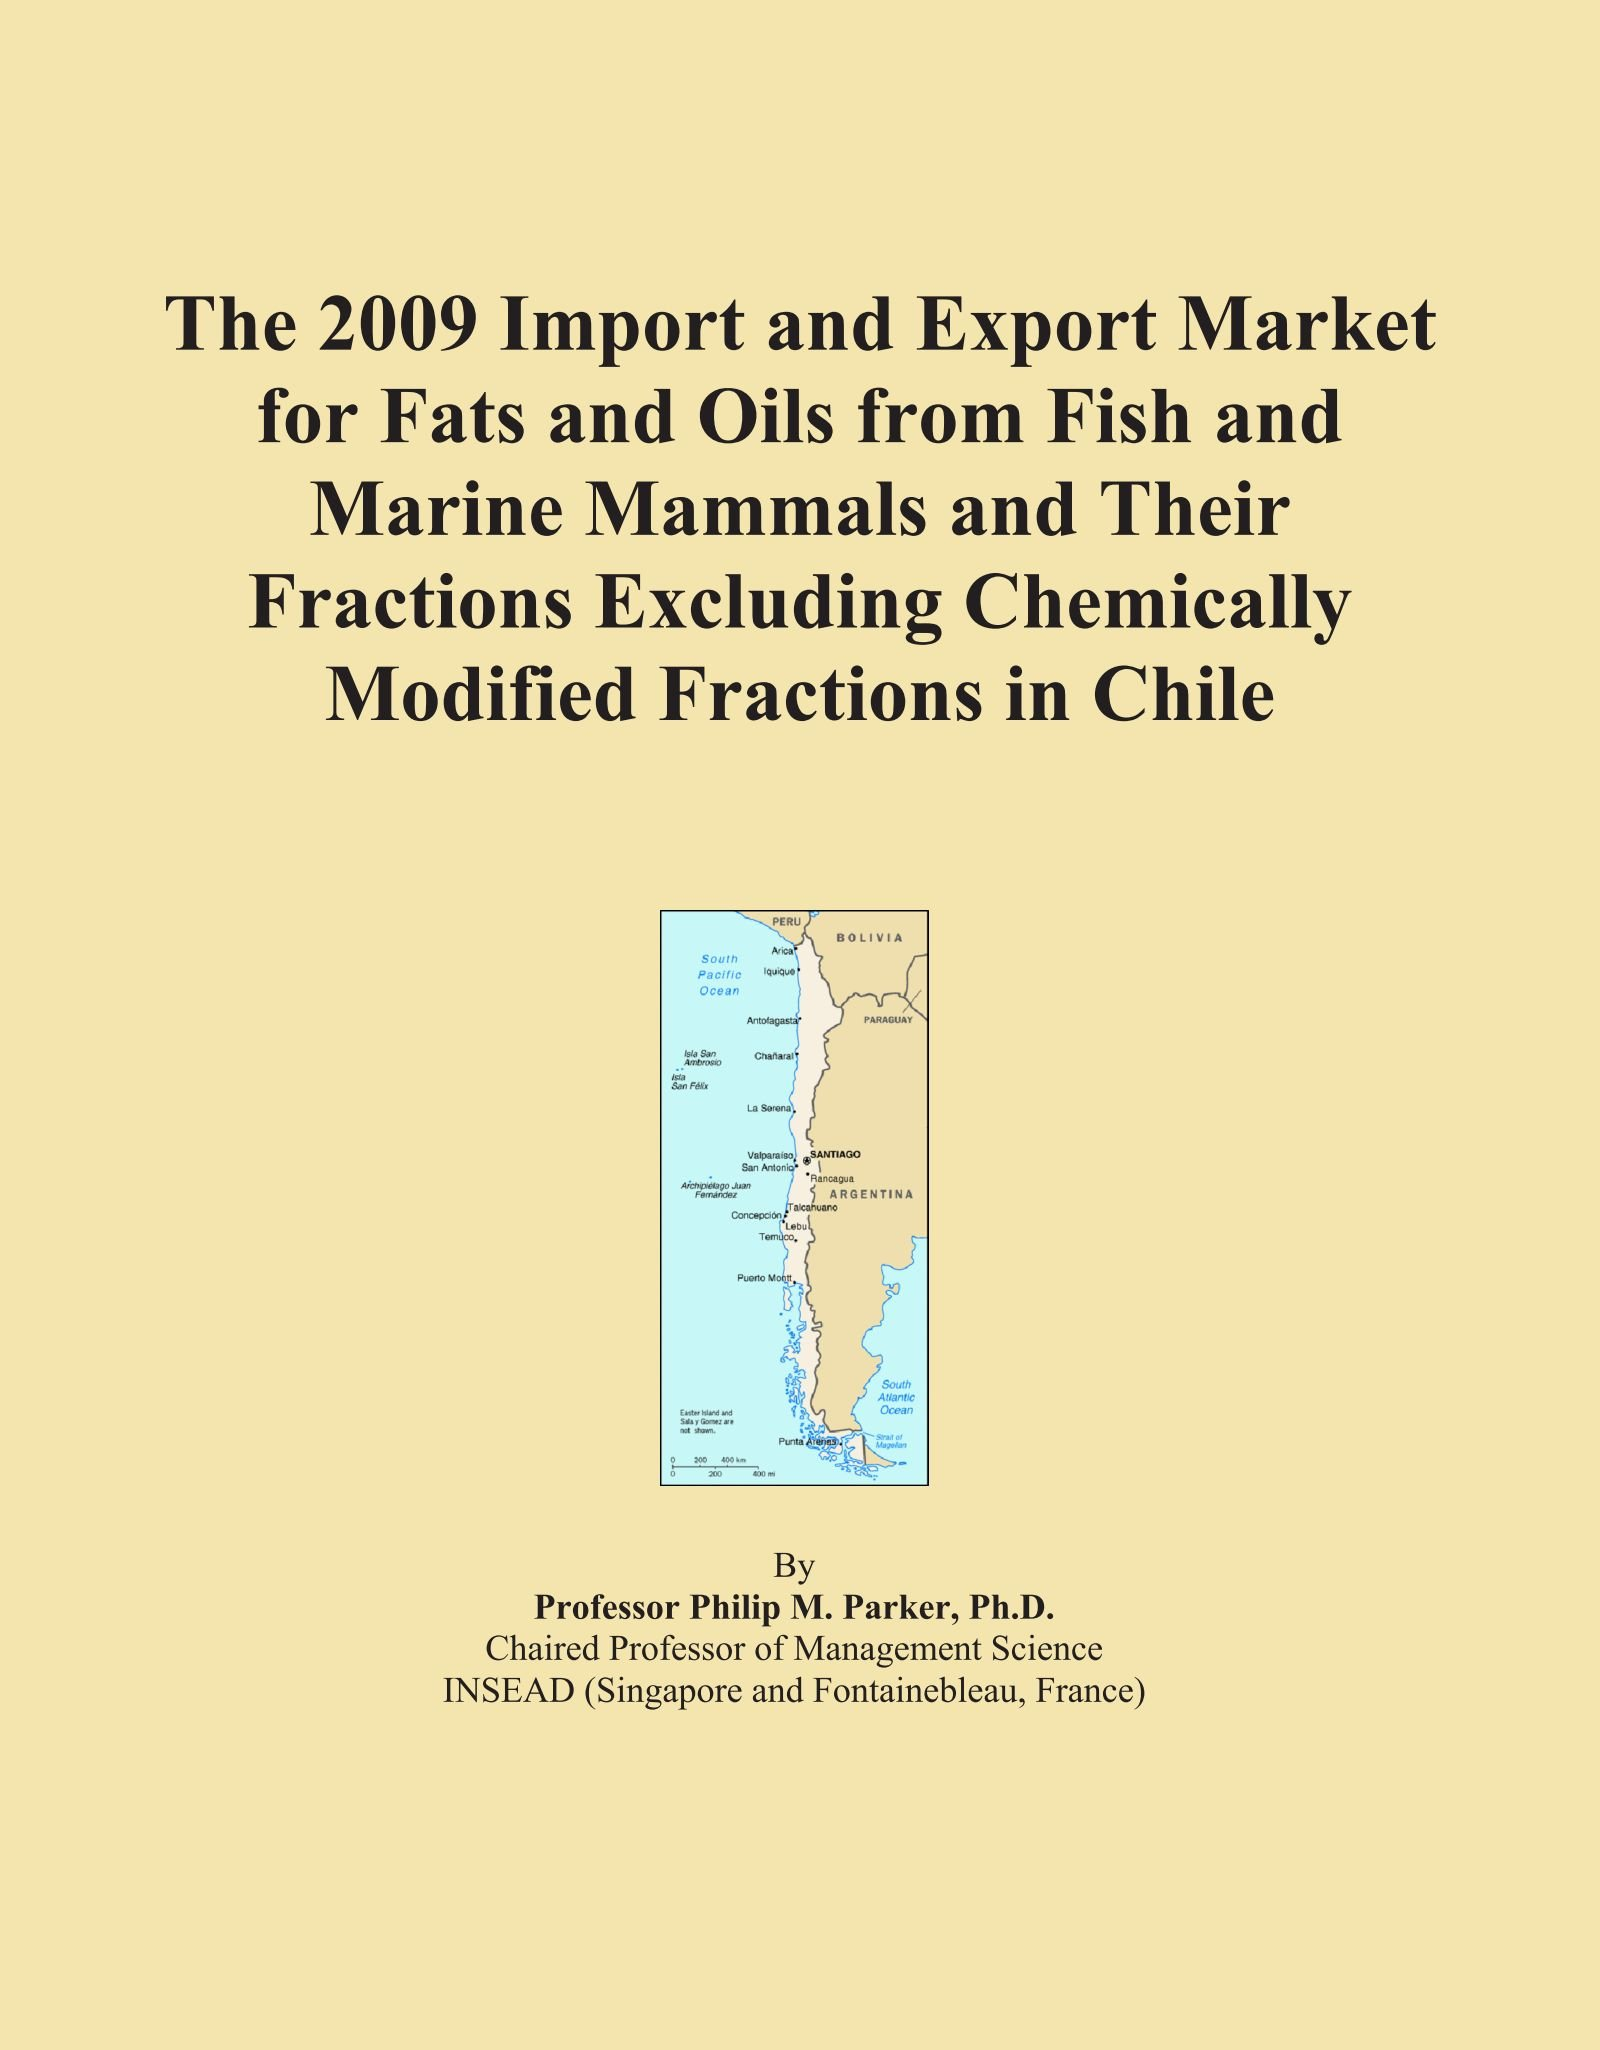 The 2009 Import and Export Market for Fats and Oils from Fish and Marine Mammals and Their Fractions Excluding Chemically Modified Fractions in Chile PDF